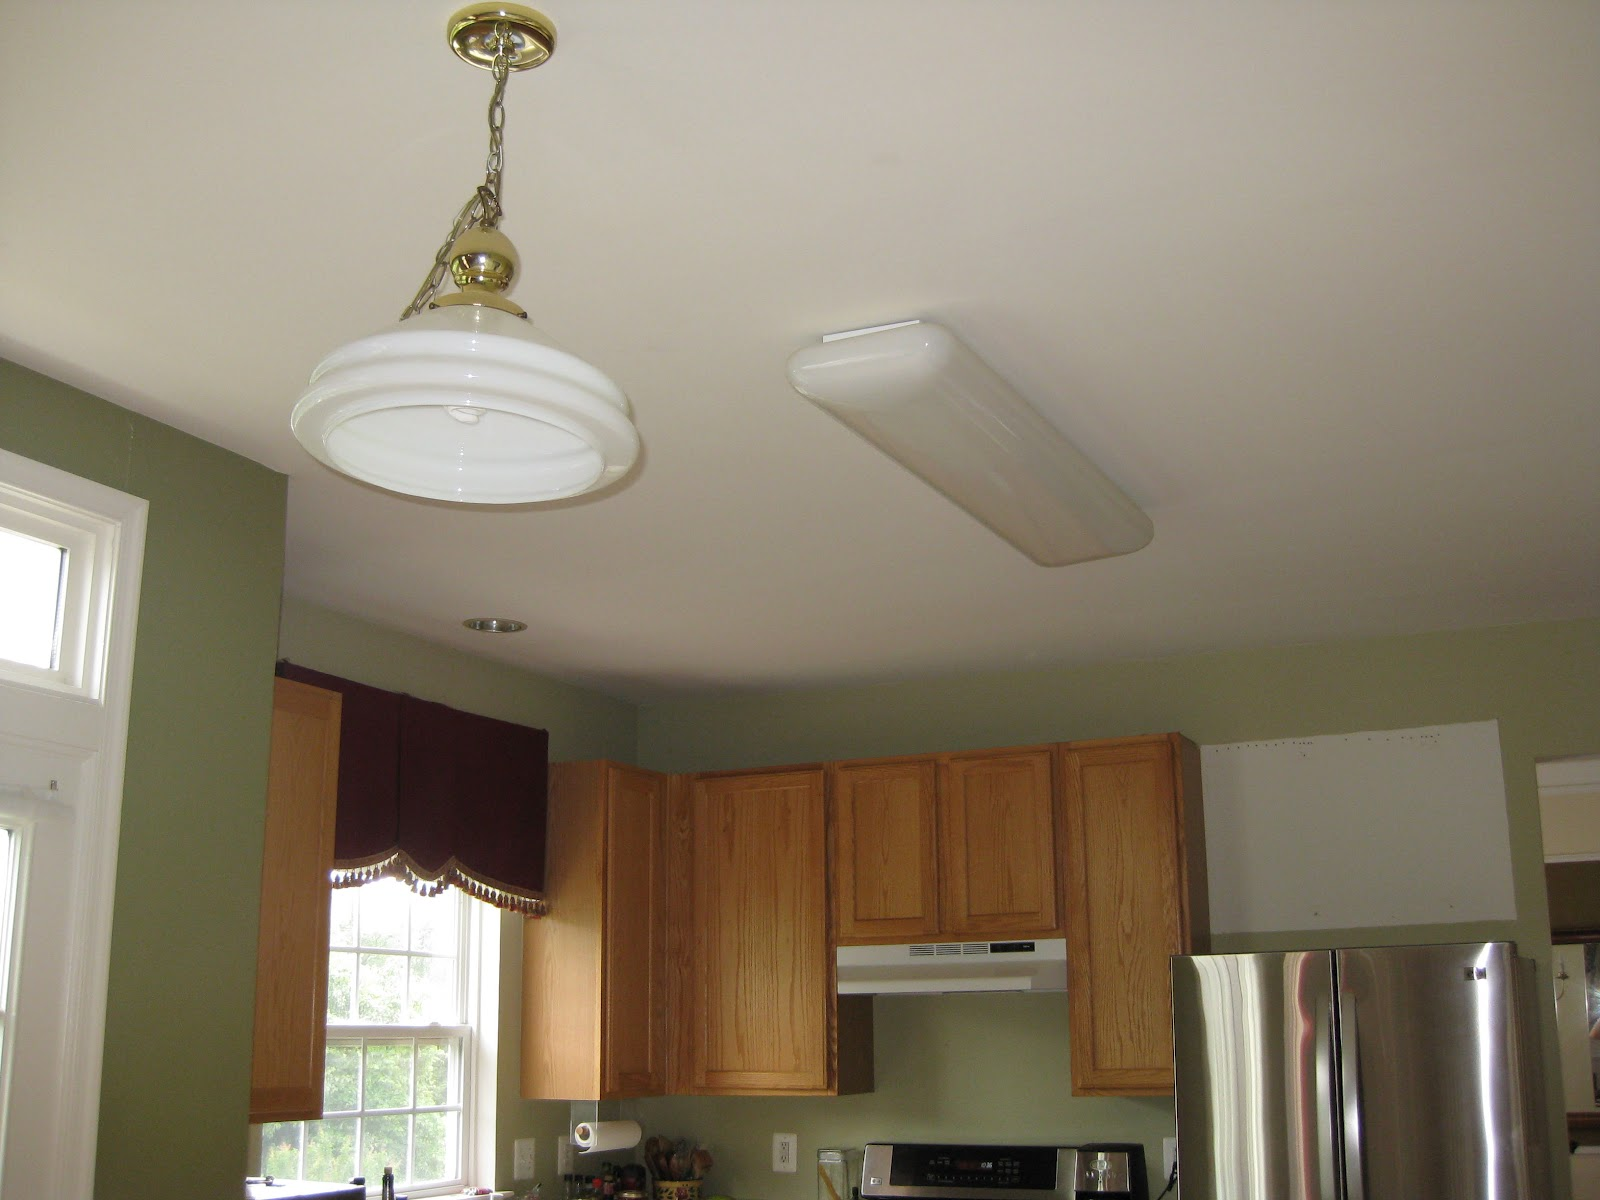 Kitchen Light Fixture Wiring Free Vehicle Diagrams Switch Thinking About Installing Recessed Lights Remodelando La Casa Rh Remodelandolacasa Com Install Overhead